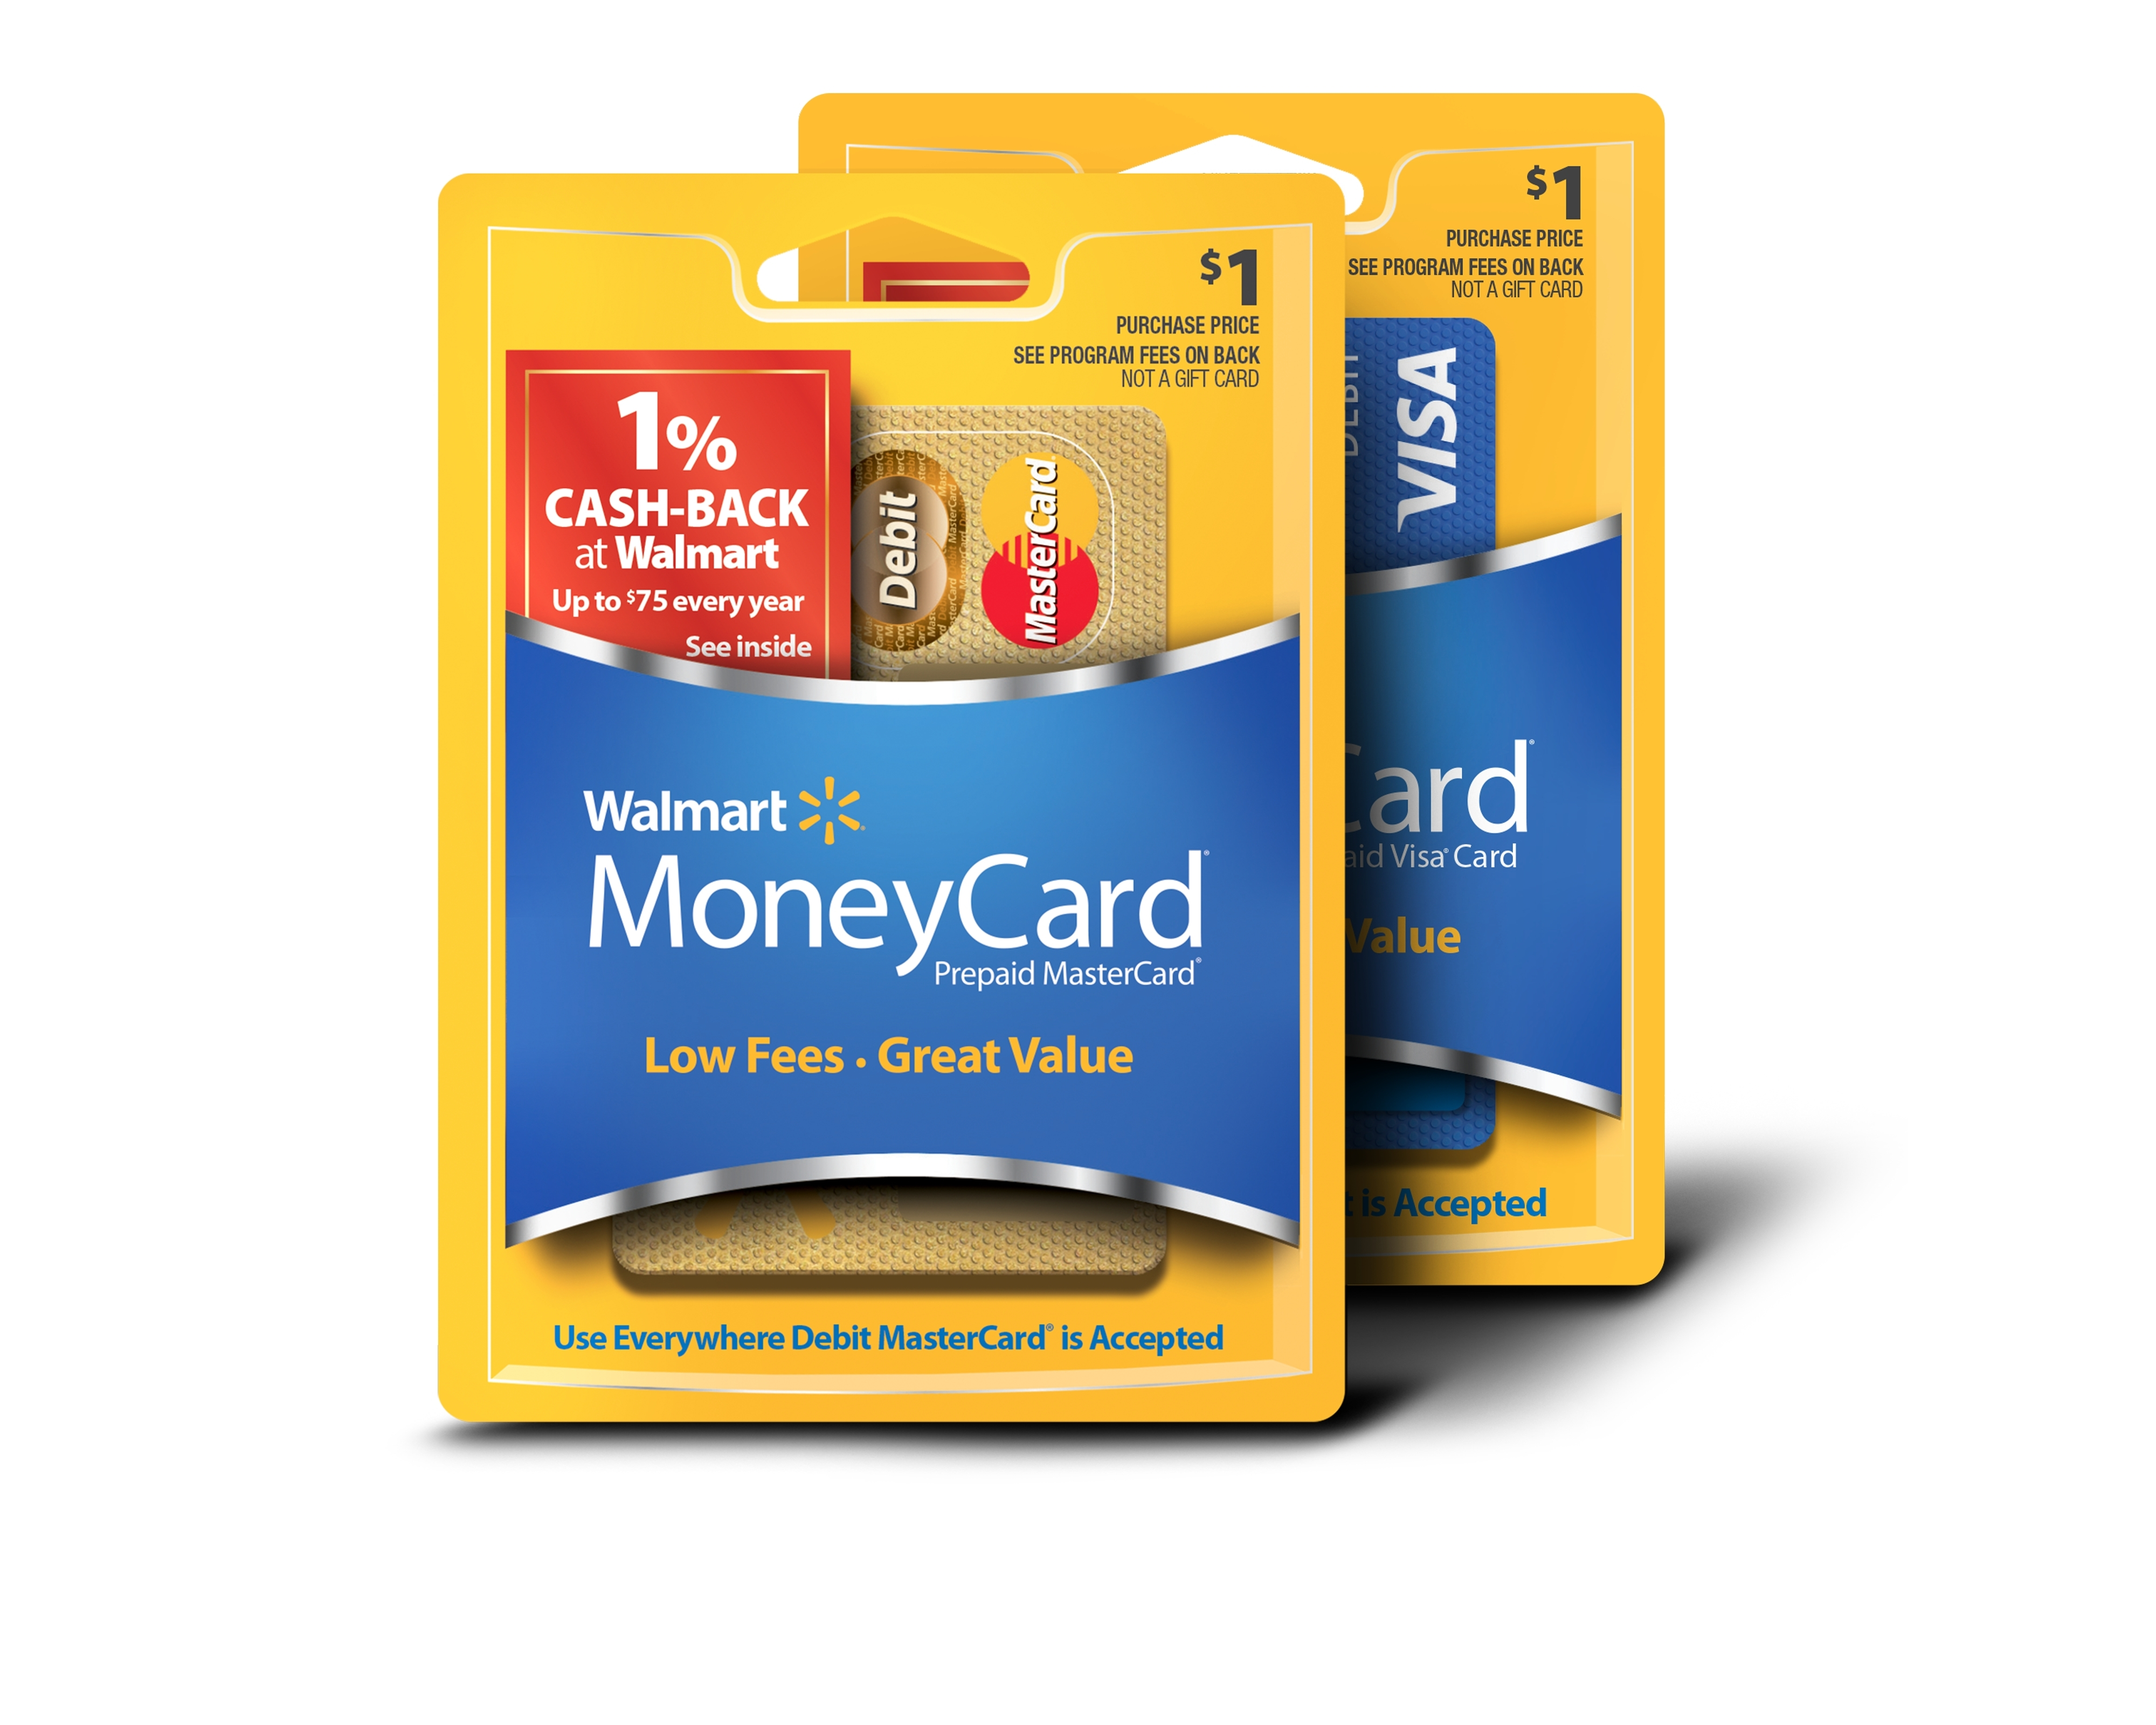 walmart s family of cards makes it as easy as 3 2 1 to manage